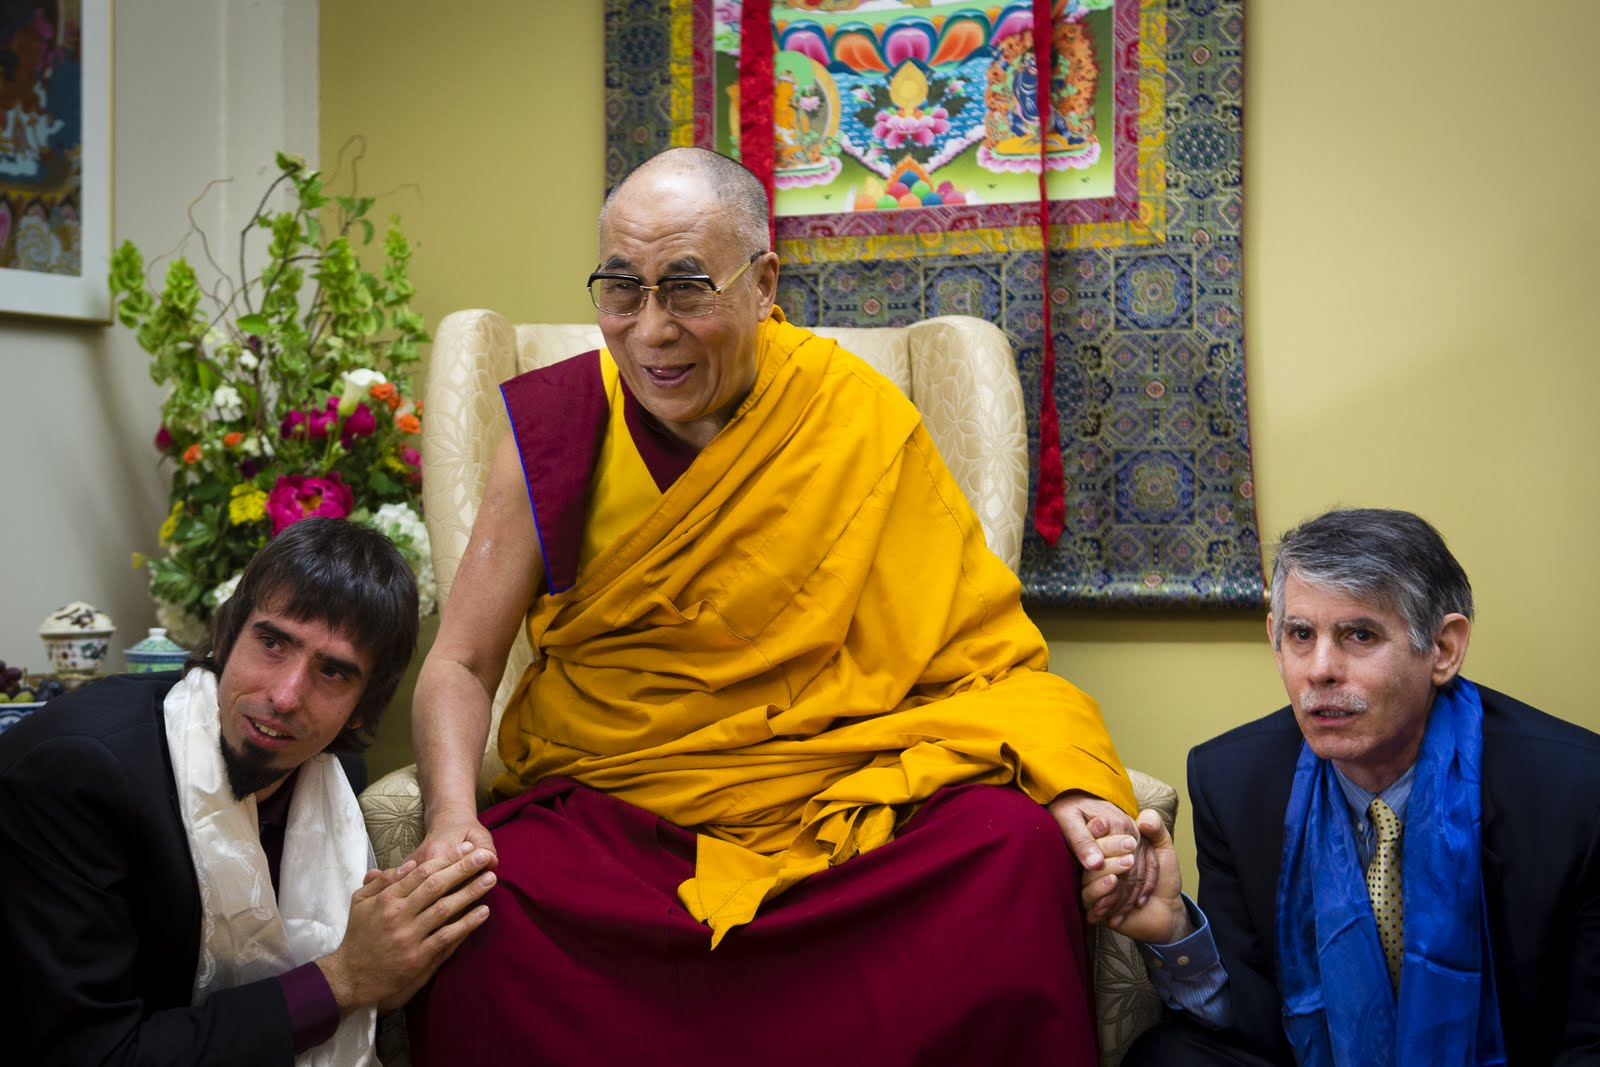 Tenzin Ösel Hita, His Holiness the Dalai Lama and FPMT International Office Director of Operations. Photo by Leah Nash.